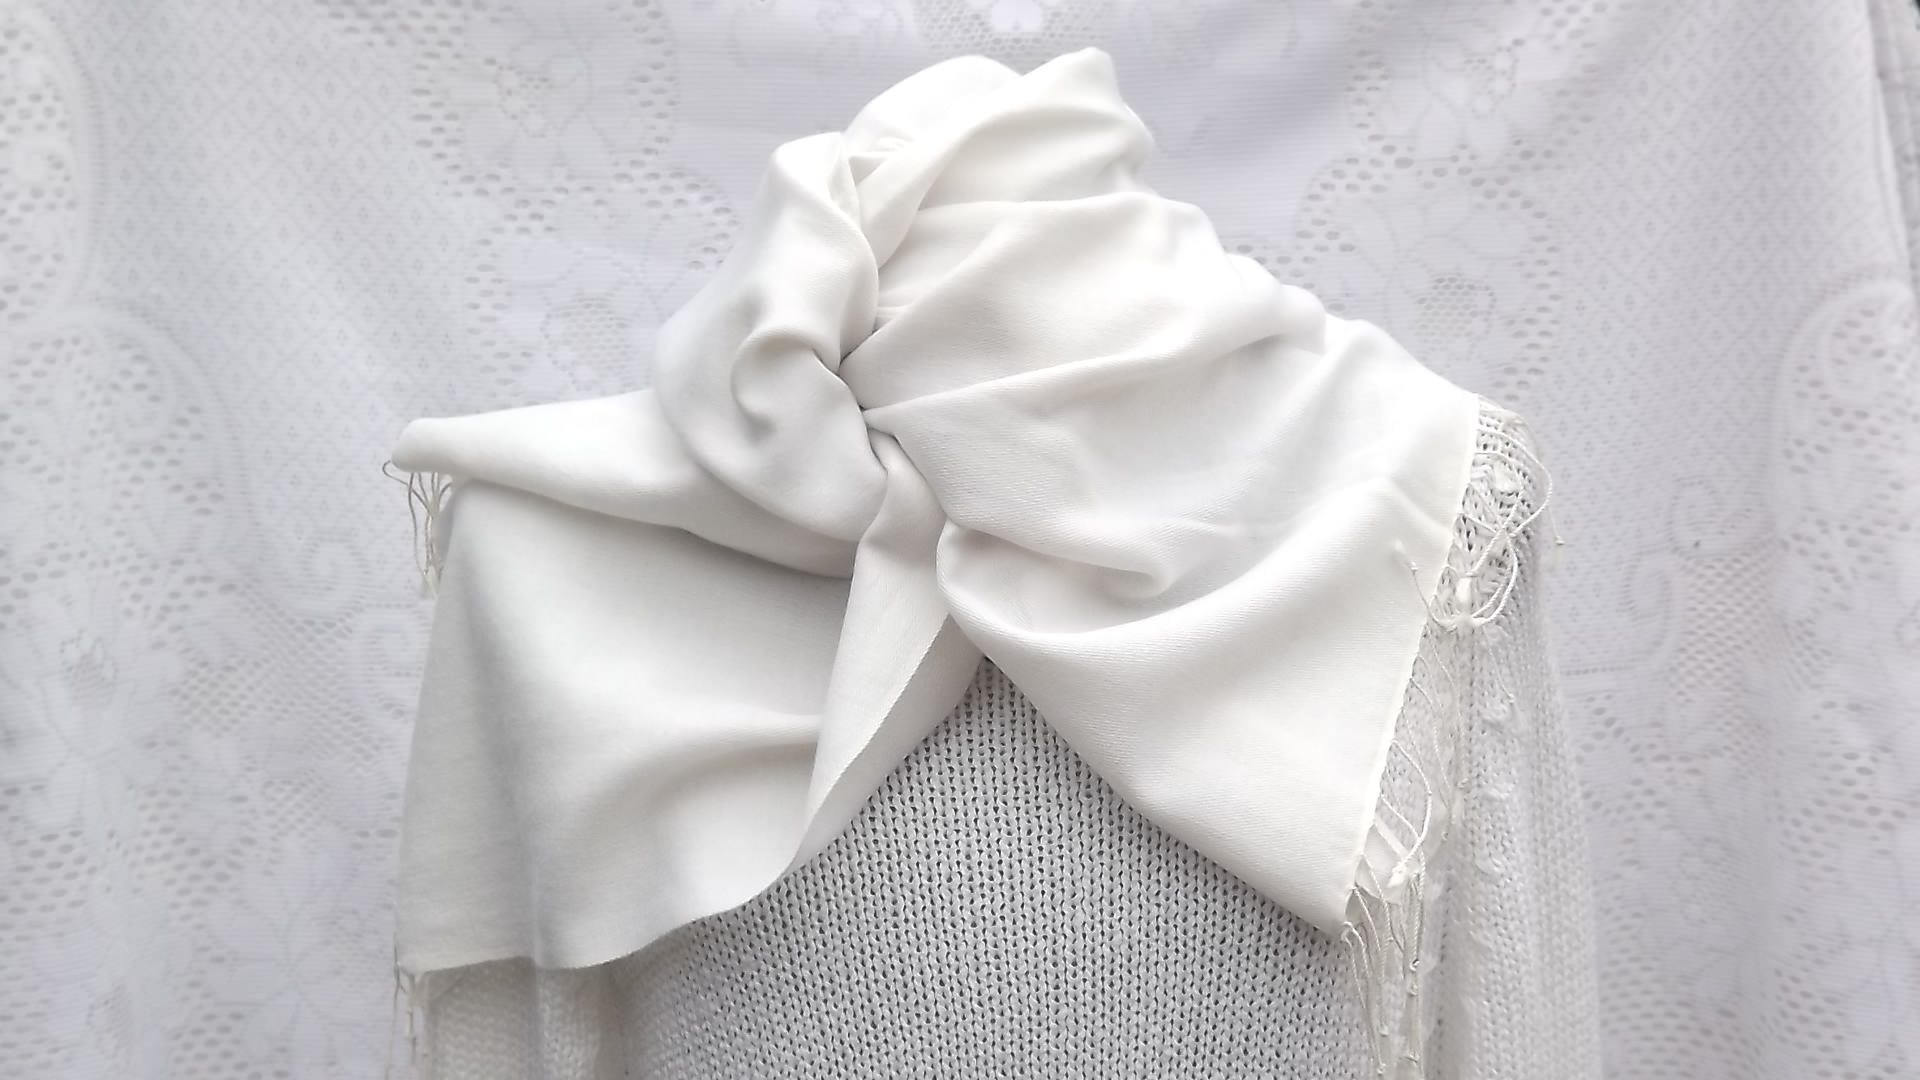 white snowdrop pashmina scarf, White Snowdrop cashmere wedding pashmina scarves, White Snowdrop cashmere pashmina scarves, White Snowdrop cashmere pashmina wraps, White Snowdrop cashmere pashmina stoles, White Snowdrop cashmere pashmina shawls, perfect White Snowdrop cashmere pashmina, snowdrop pashmina scarves, snowdrop pashmina wraps, snowdrop pashmina stoles, snowdrop pashmina shawls, perfect snowdrop pashmina